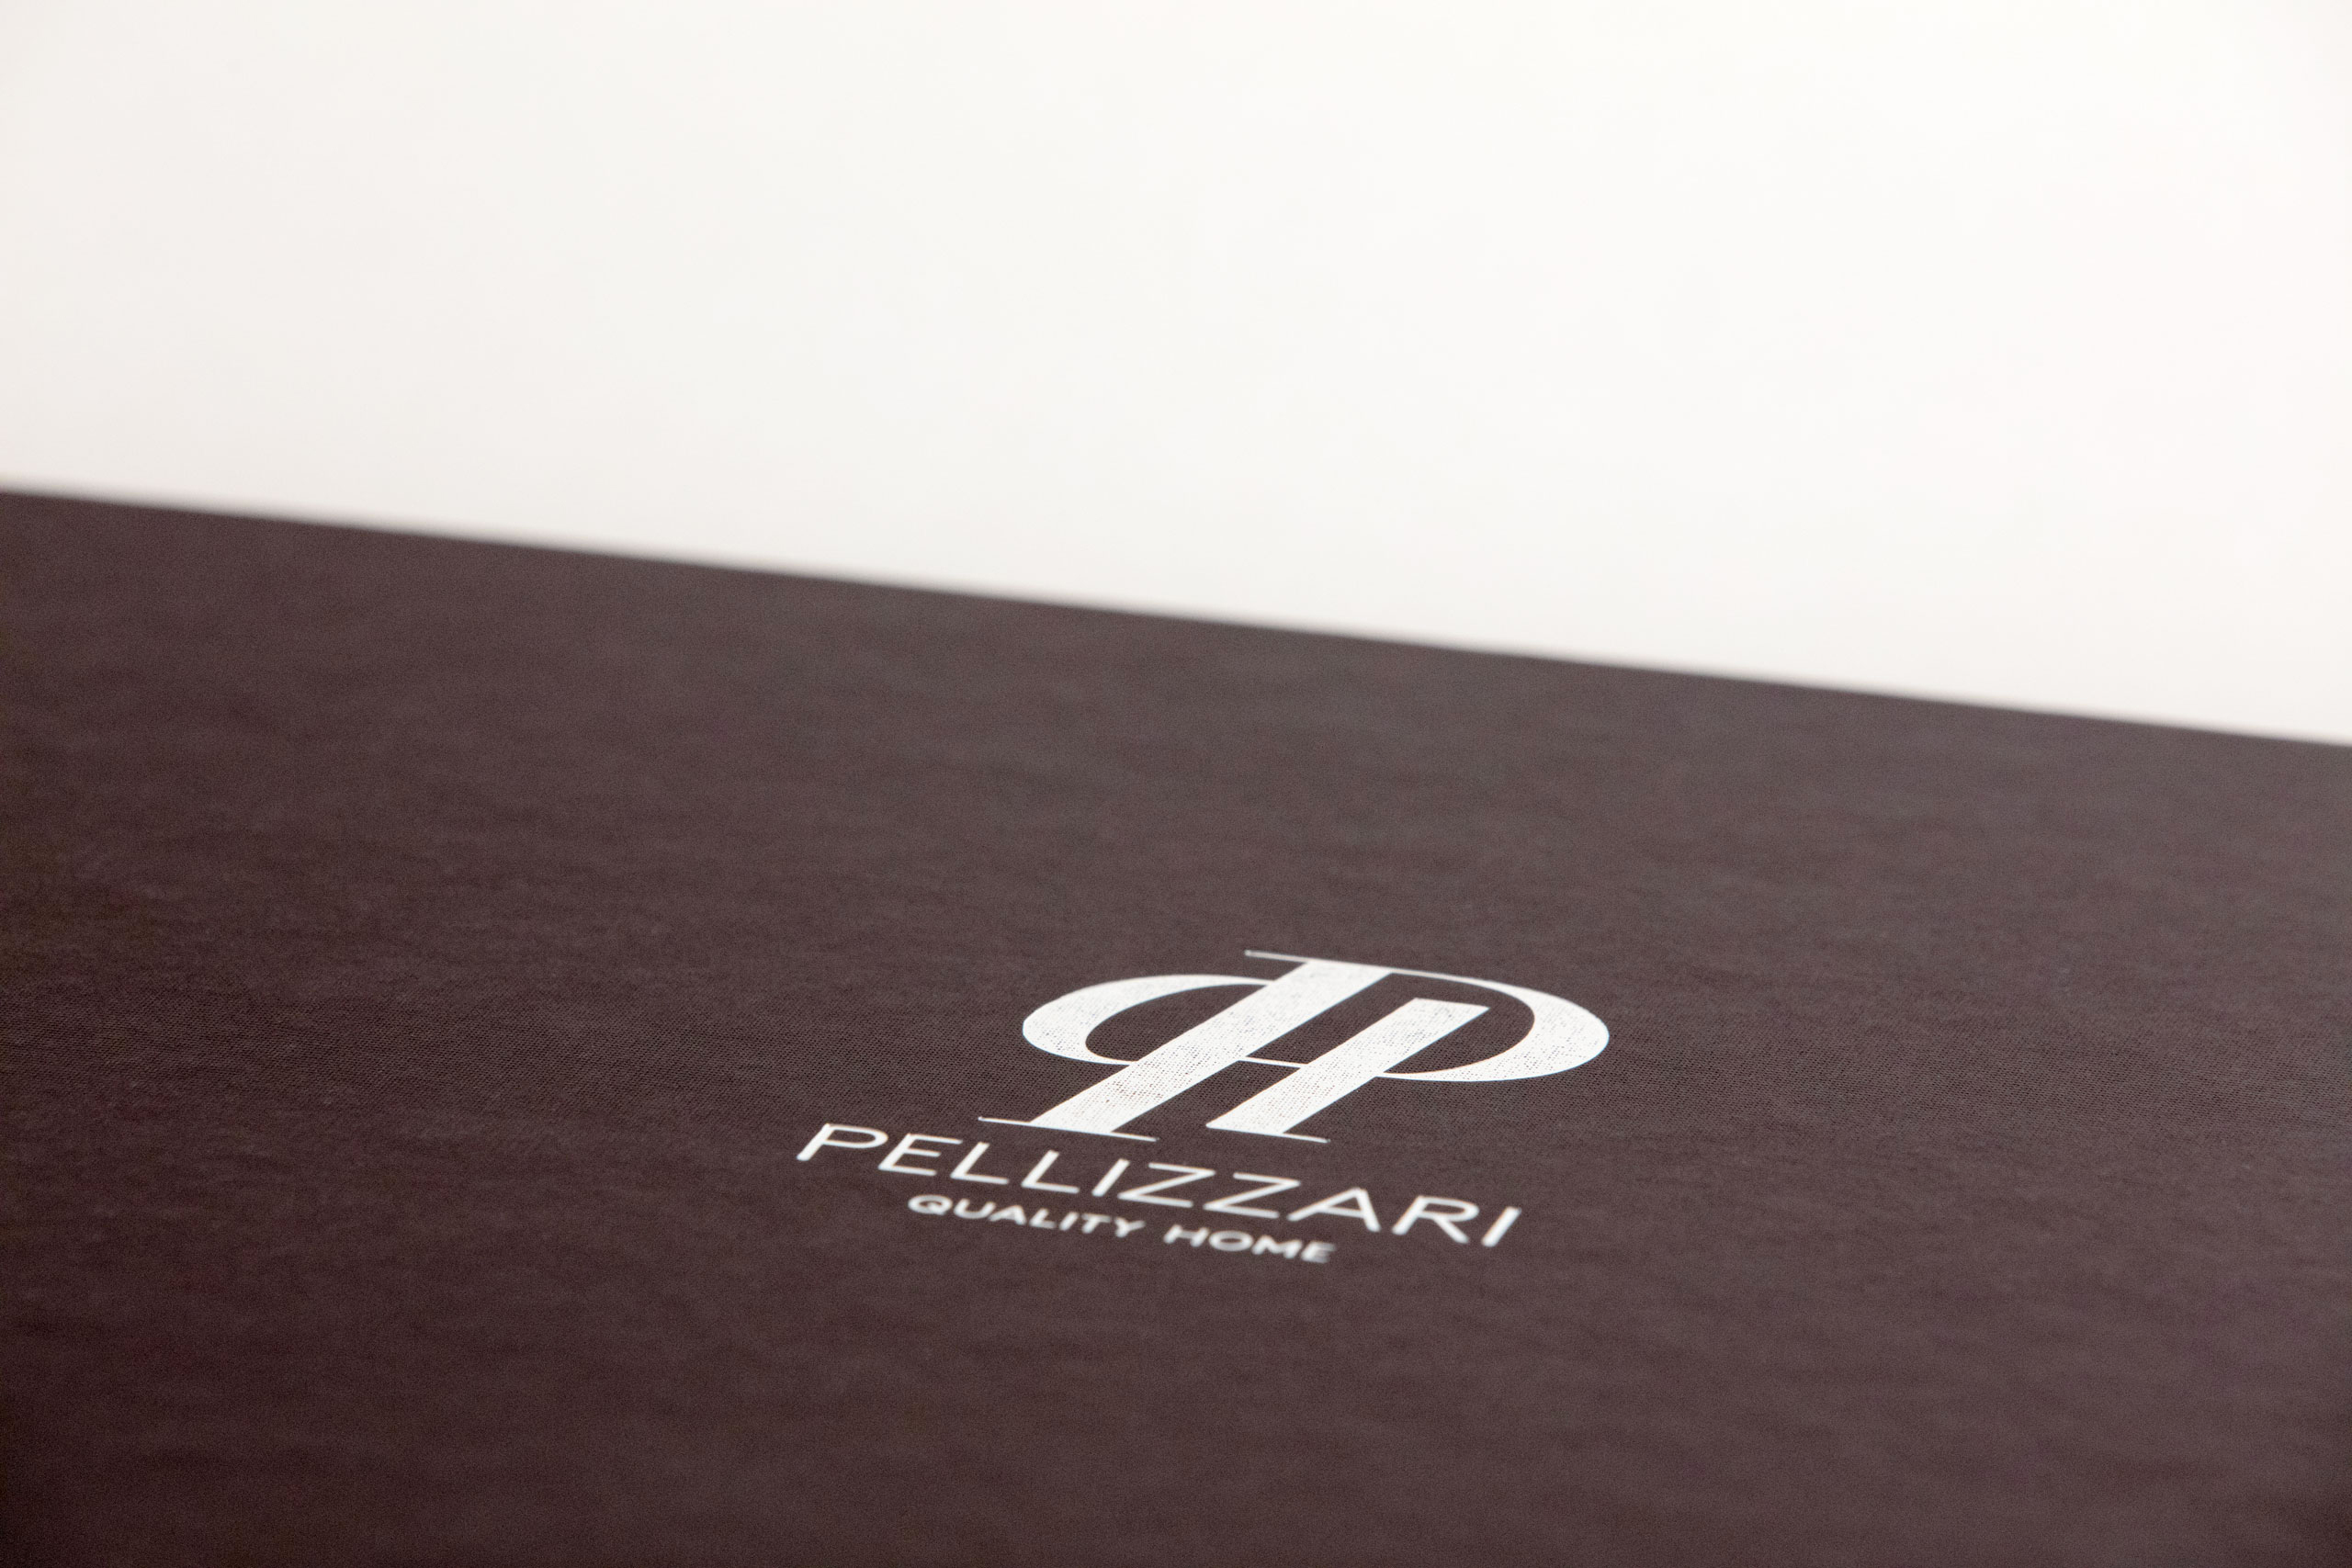 Pellizzari Quality Home 1